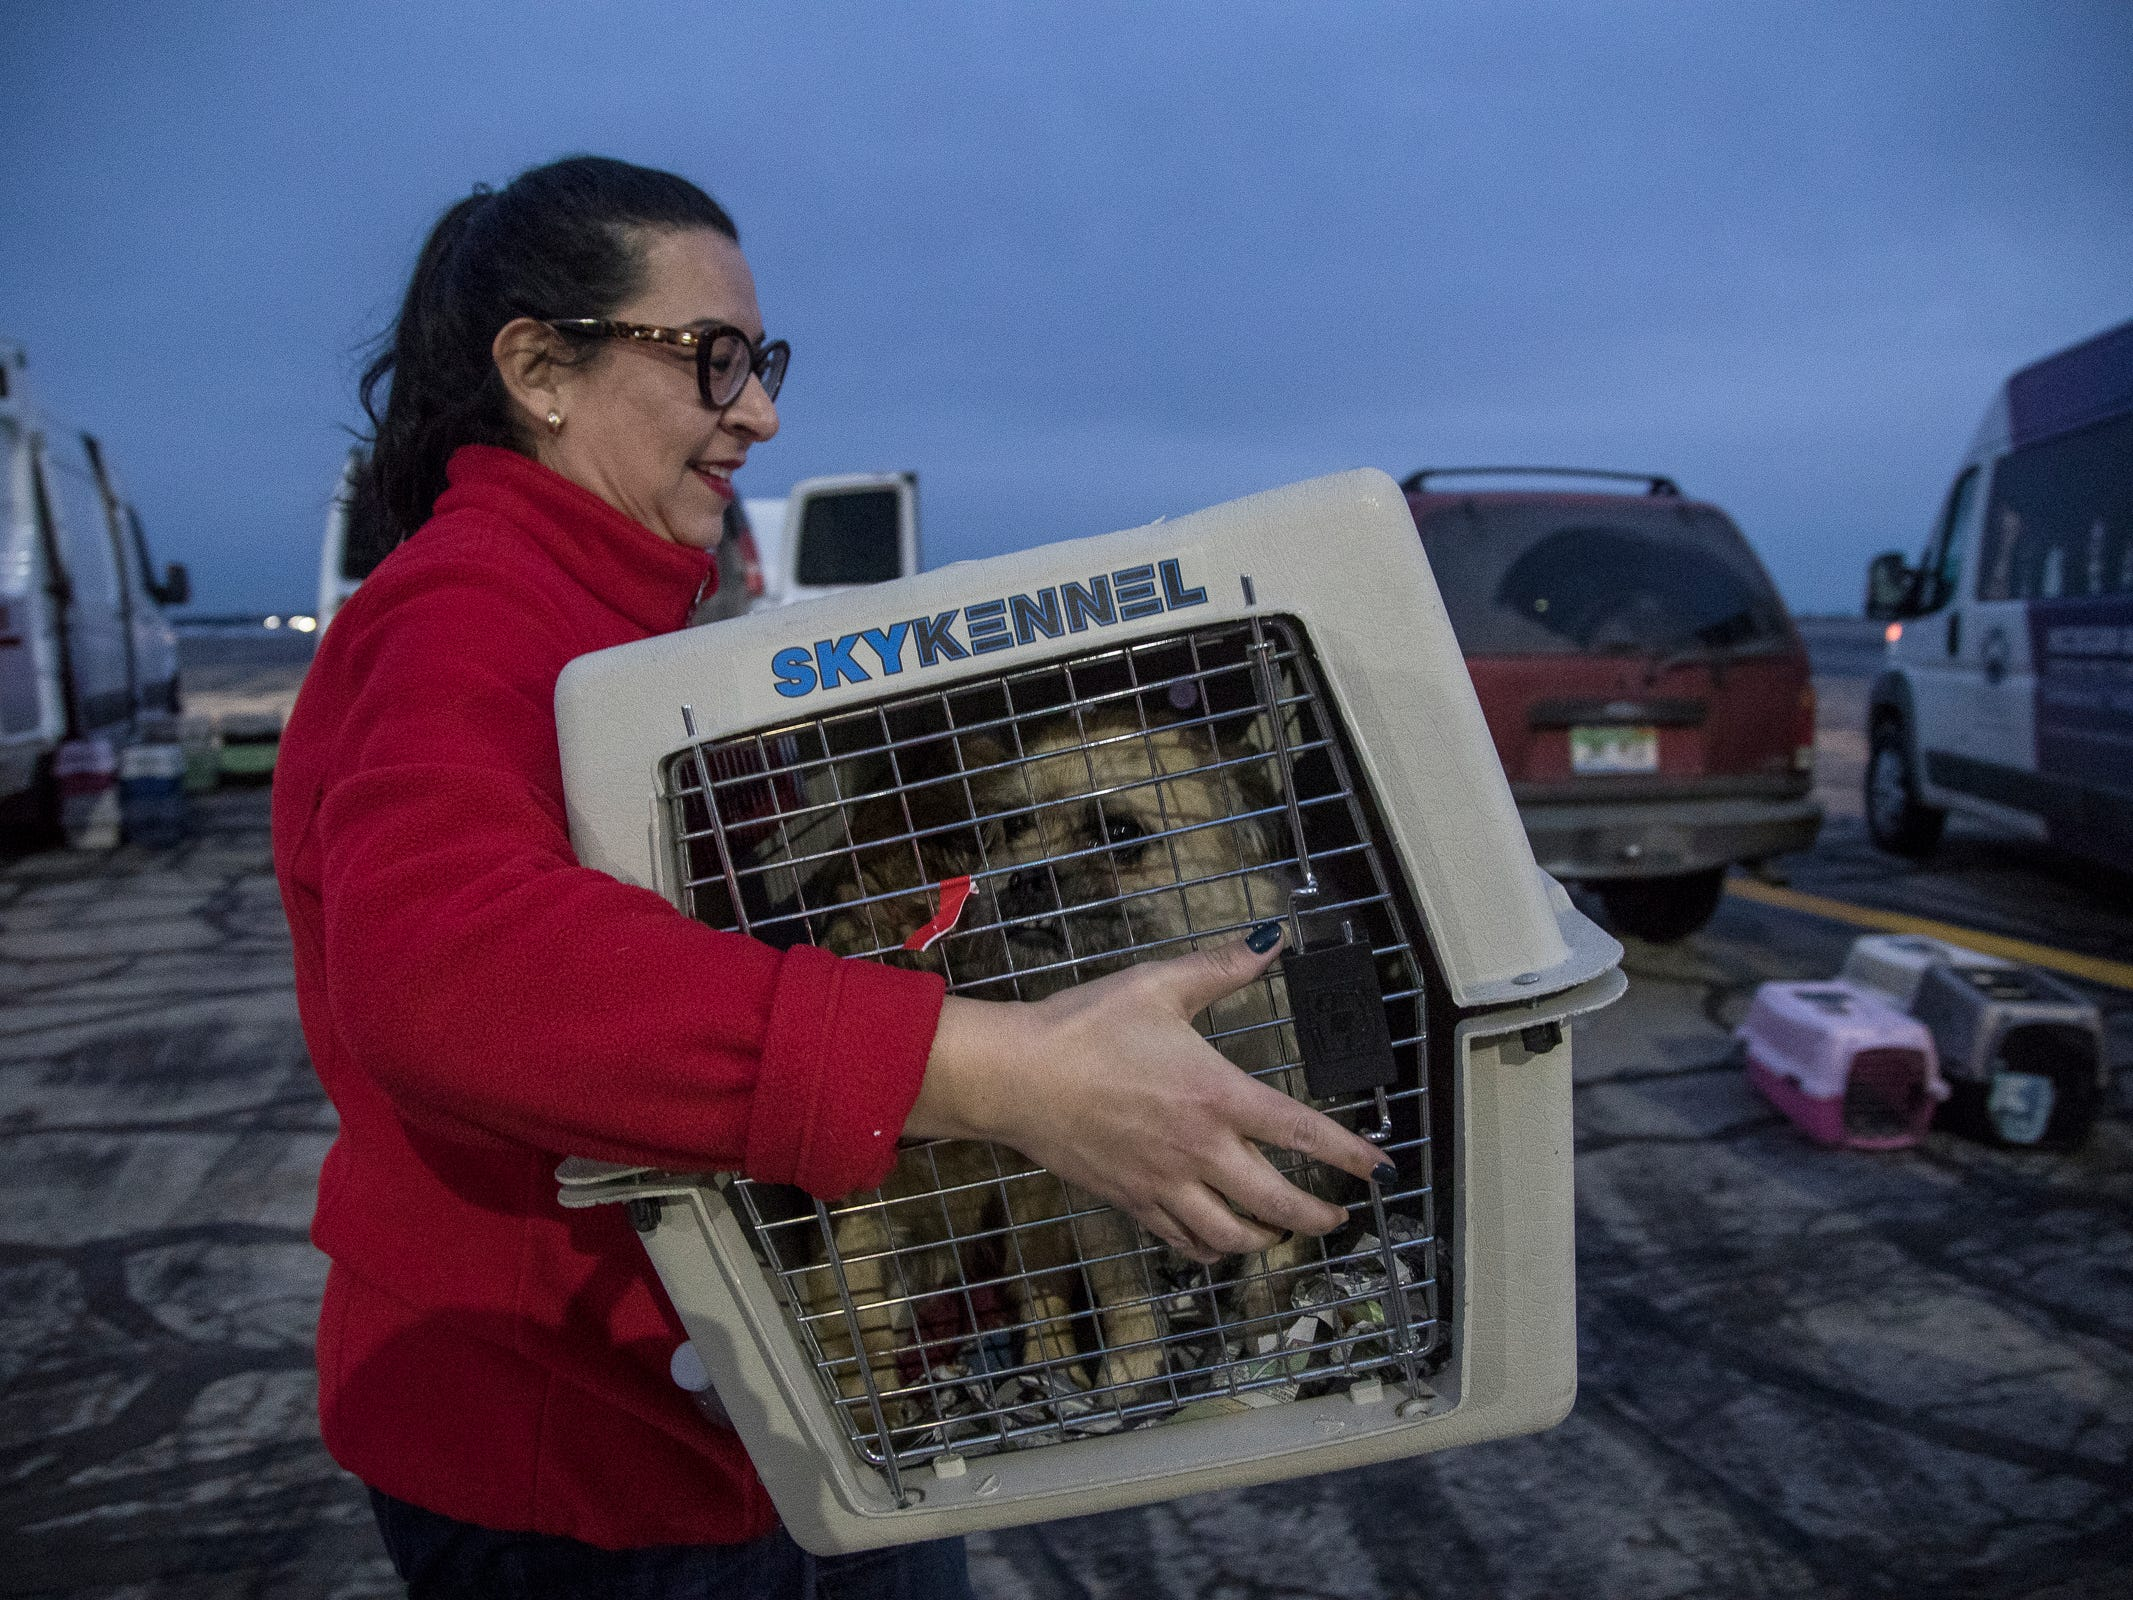 Paula Durant, a Michigan Humane Society staff, carries a crate of rescue dogs off the plane at Willow Run Airport in Ypsilanti Township, Thursday, Feb. 14, 2019. Around 91 rescue dogs flew in from Fresno, Calif. to get adopted at one of the metro Detroit Michigan Humane Society facilities.